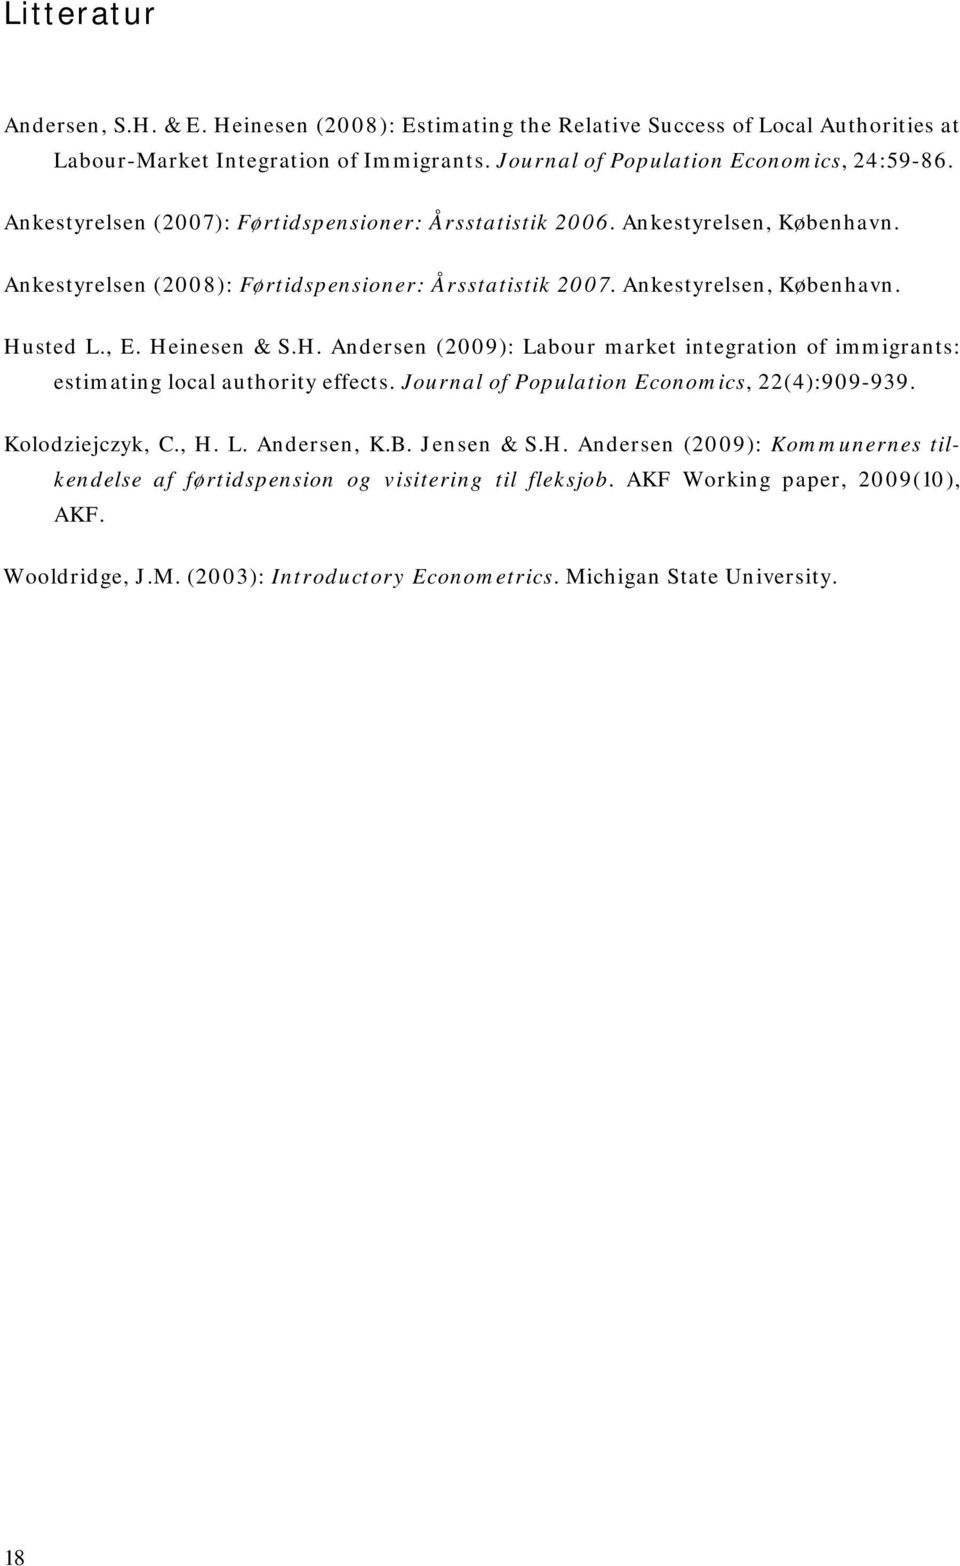 H. Andersen (2009): Labour market integration of immigrants: estimating local authority effects. Journal of Population Economics, 22(4):909-939. Kolodziejczyk, C., H. L. Andersen, K.B. Jensen & S.